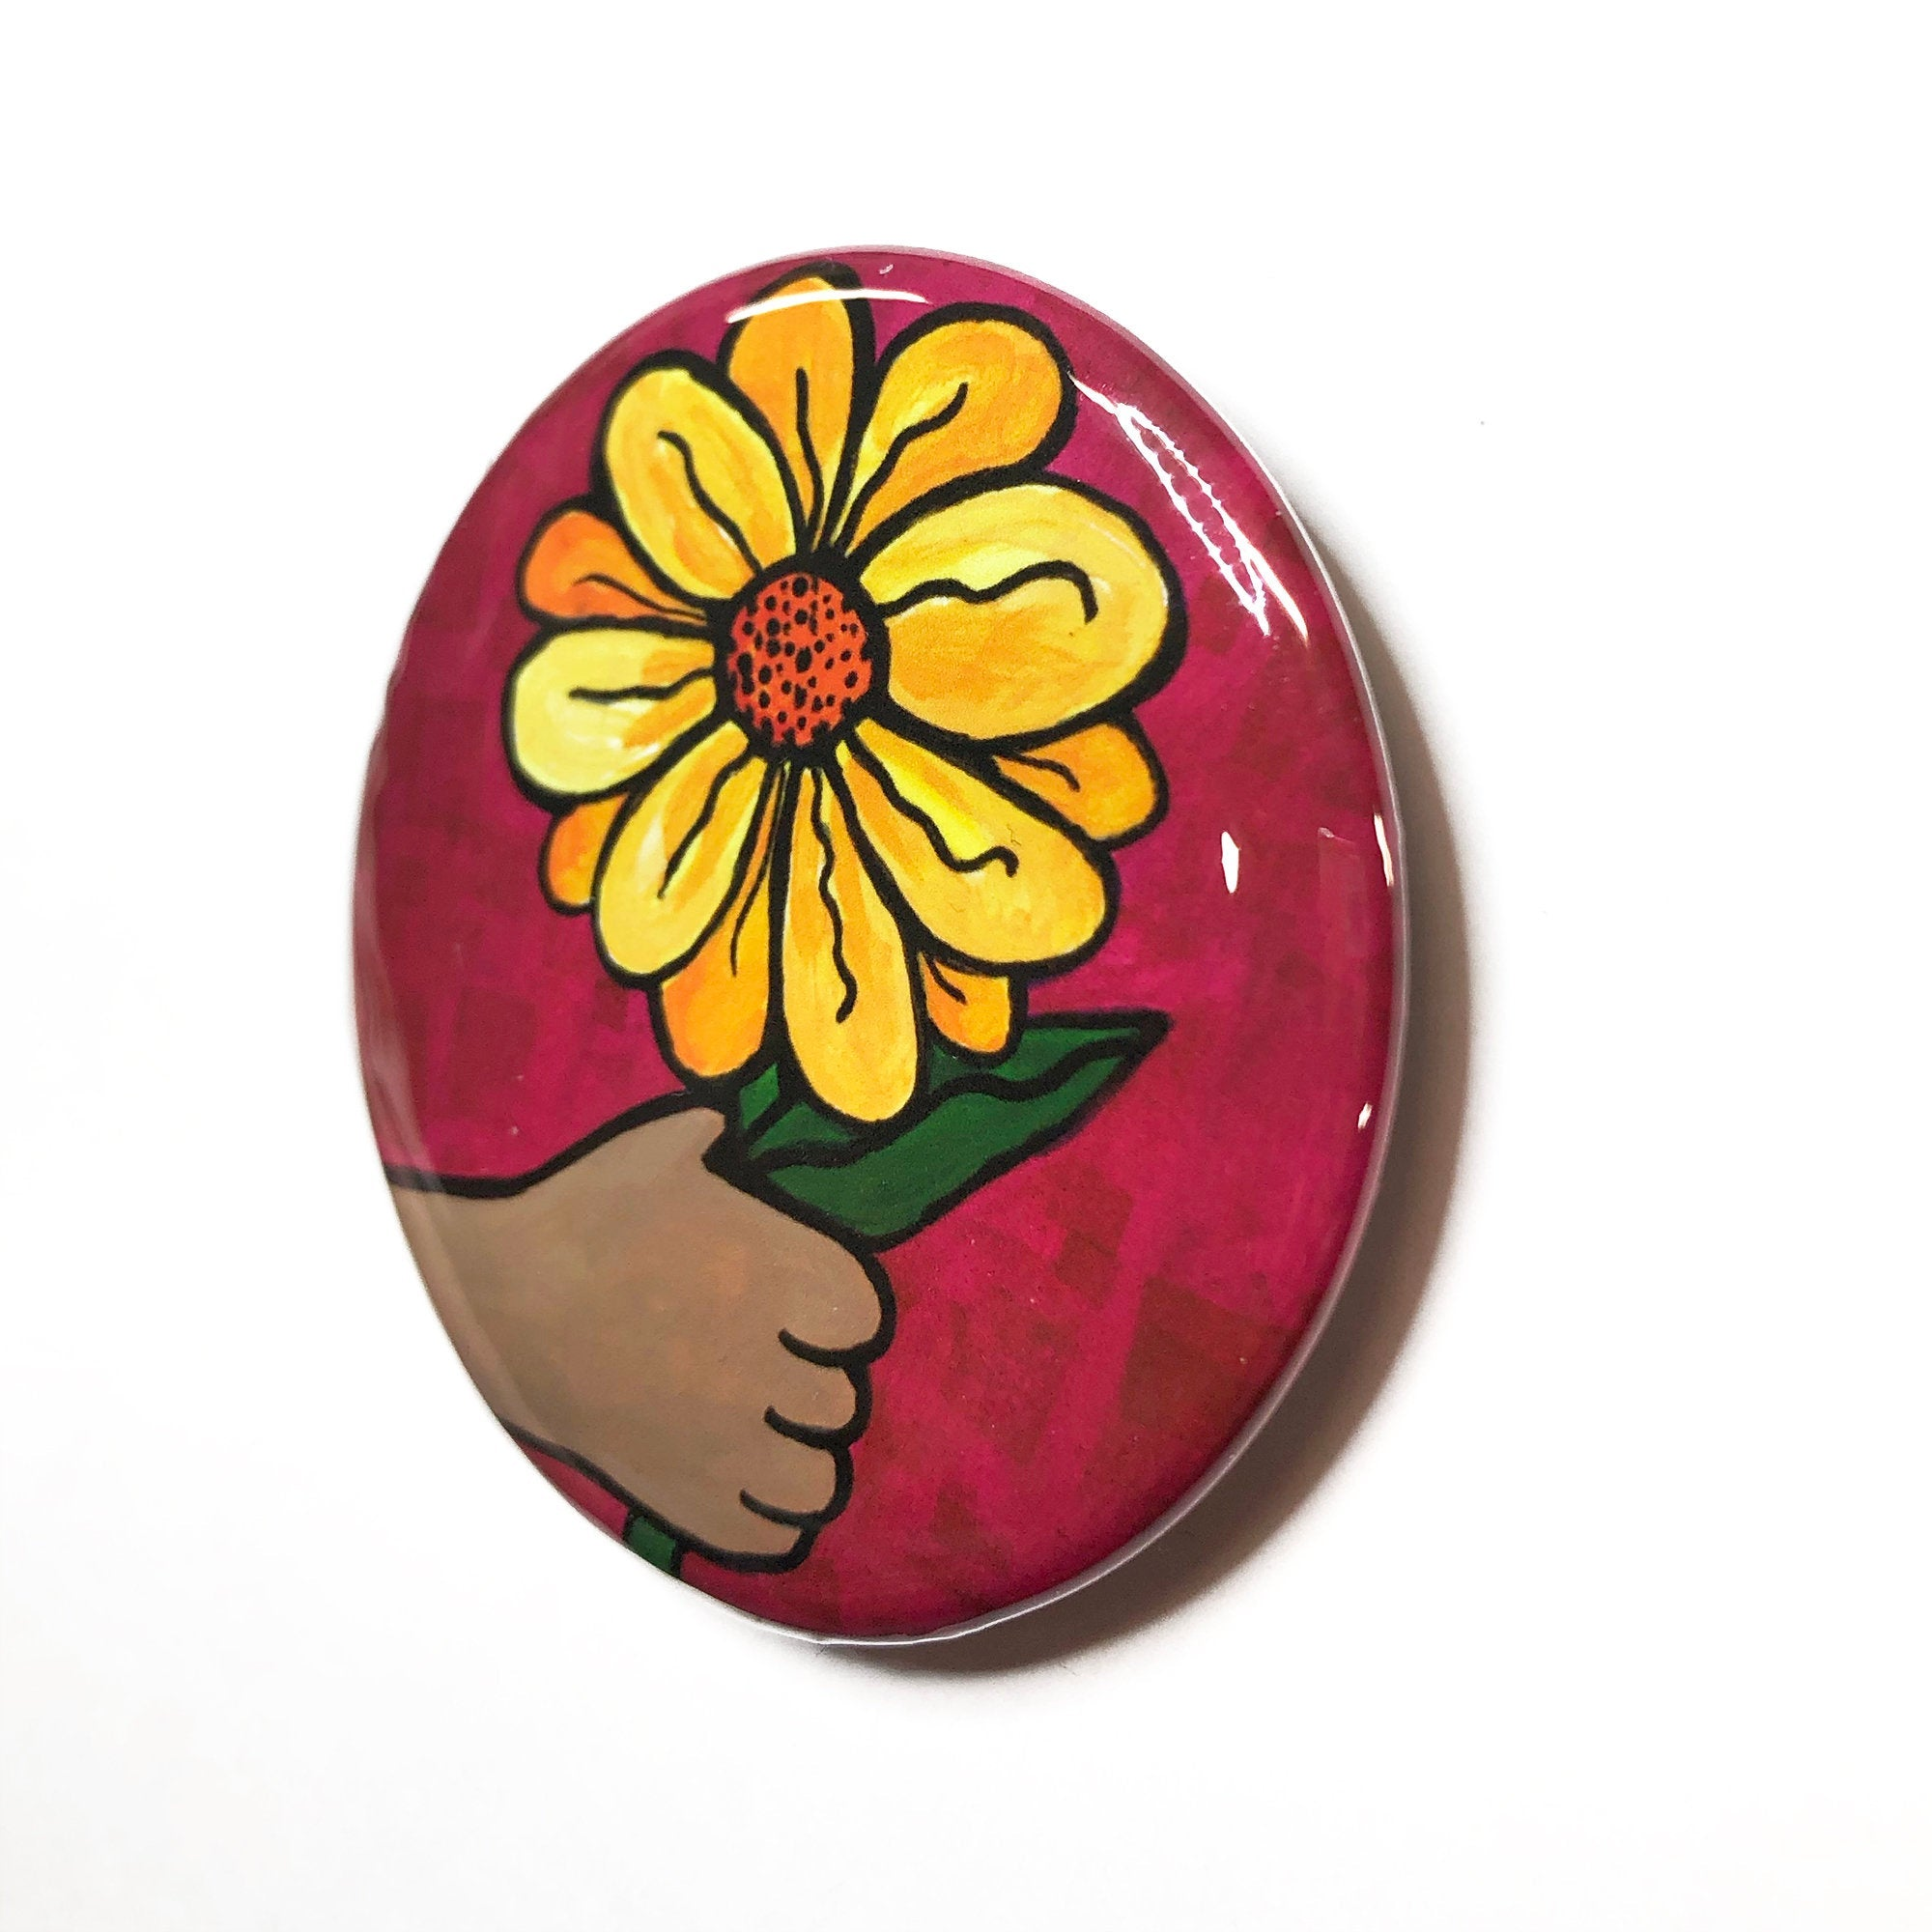 Yellow Flower Magnet, Pin Back Button or Pocket Mirror - Purse Mirror - Hand Holding Yellow Daisy